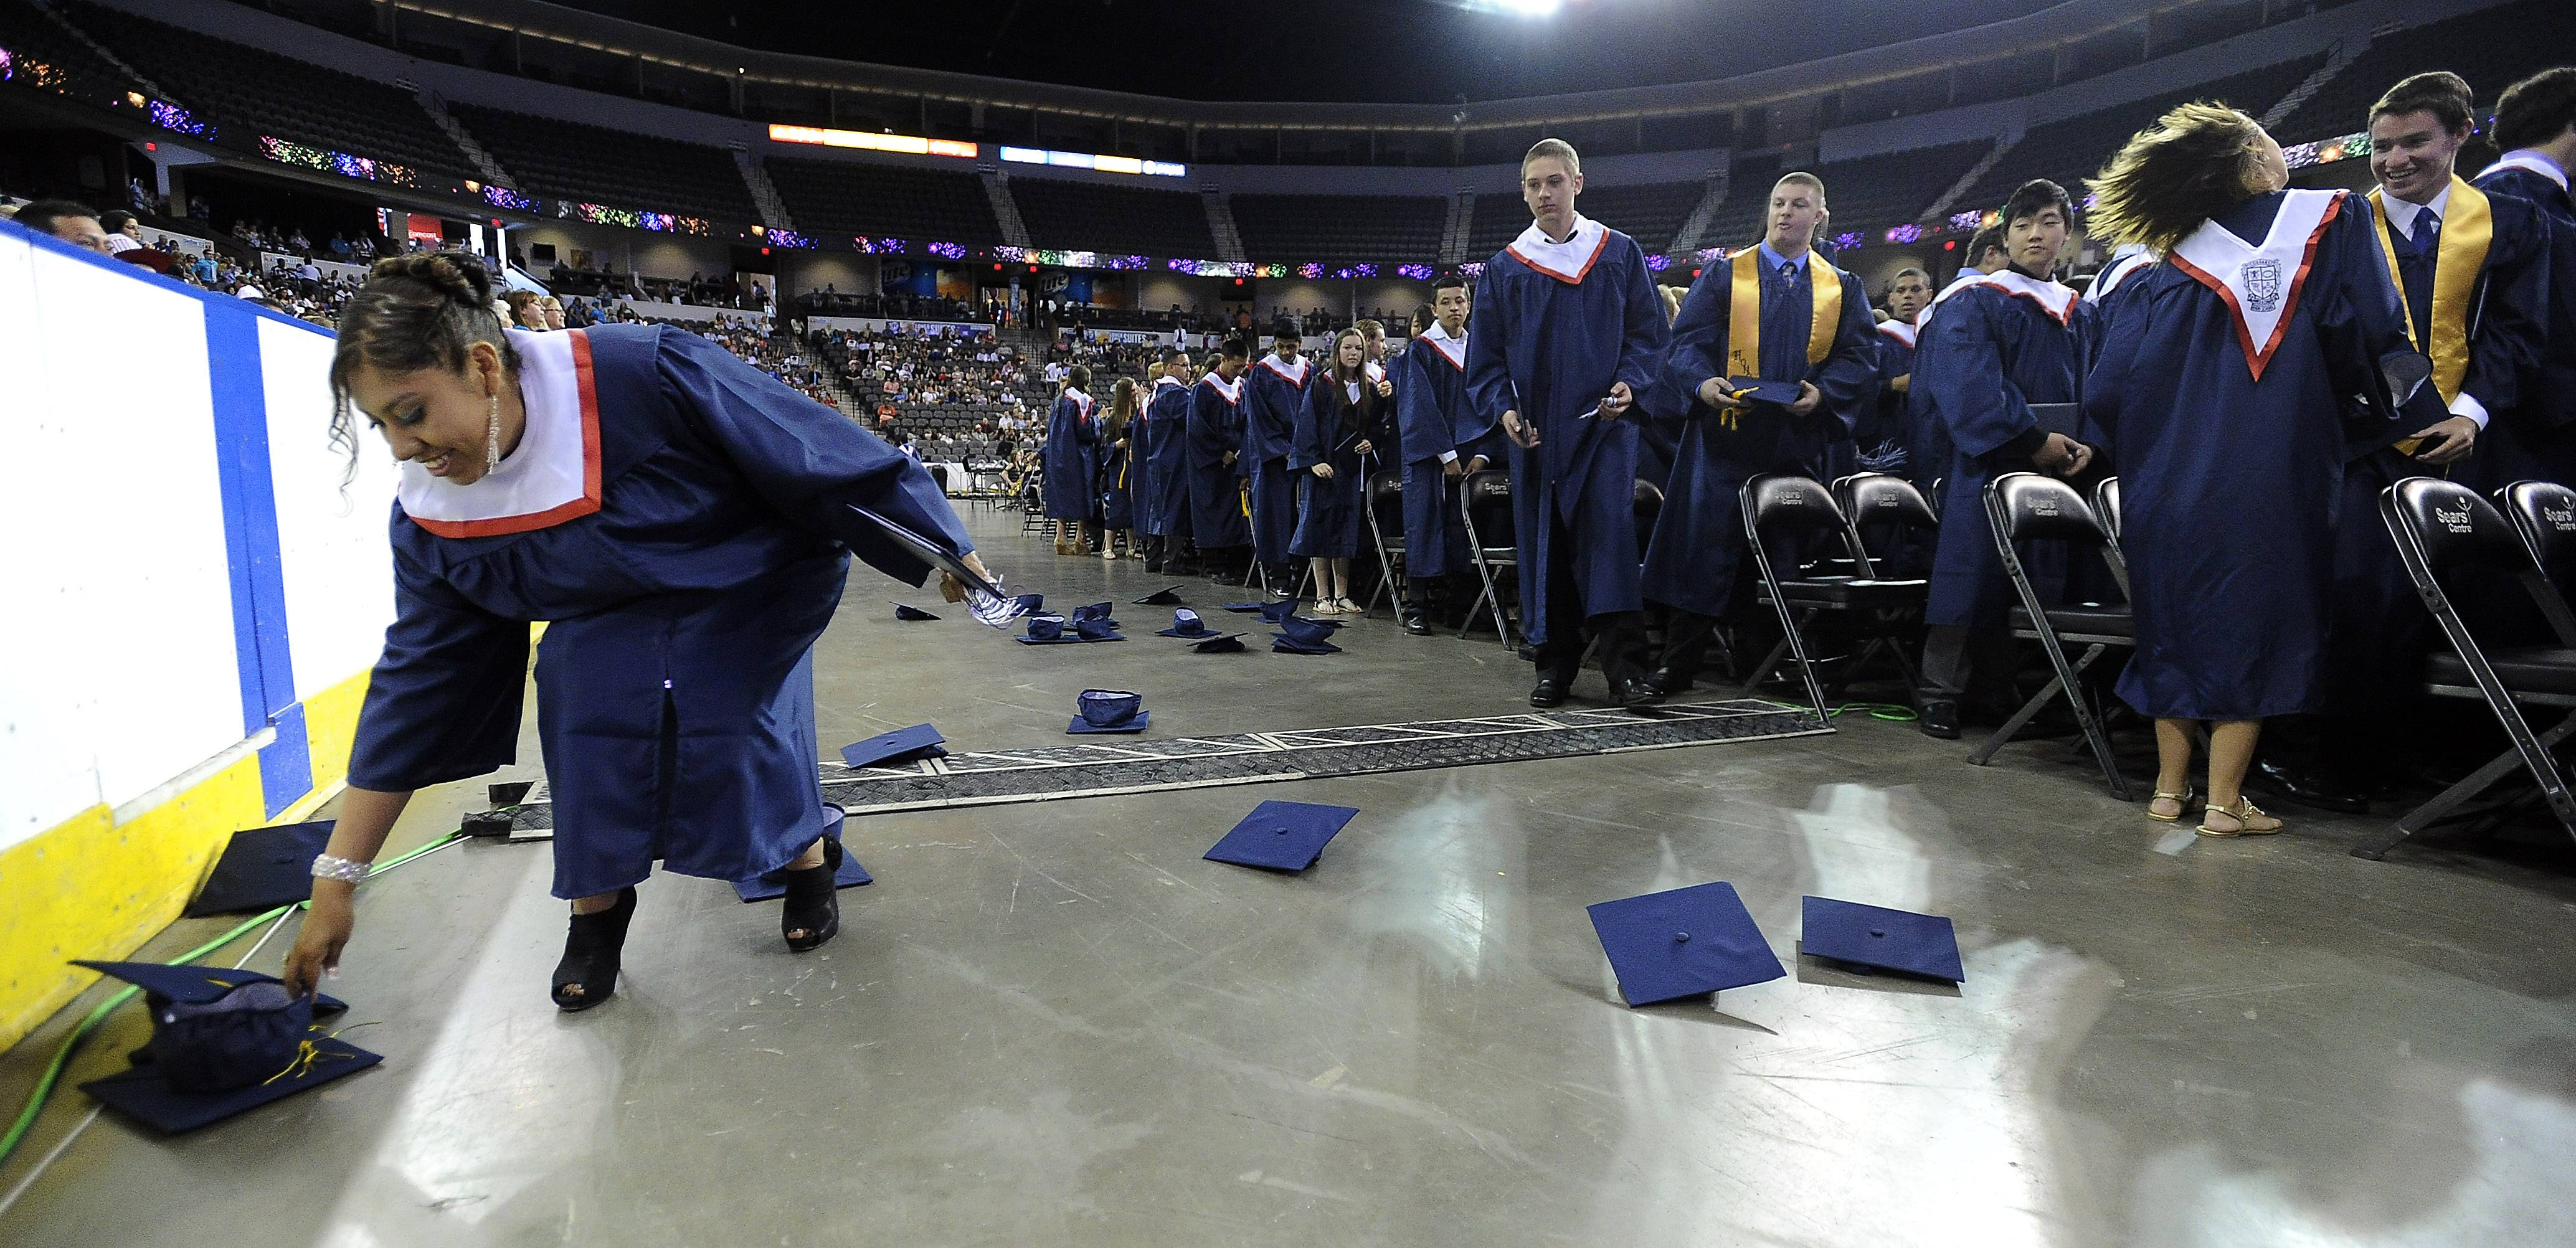 The graduation caps fly as Conant students says goodbye to their four years of high school while Michelle Juarez-Calderon looks to keep her cap as the 49th annual commencement comes to an end at the Sears Centre on Sunday.